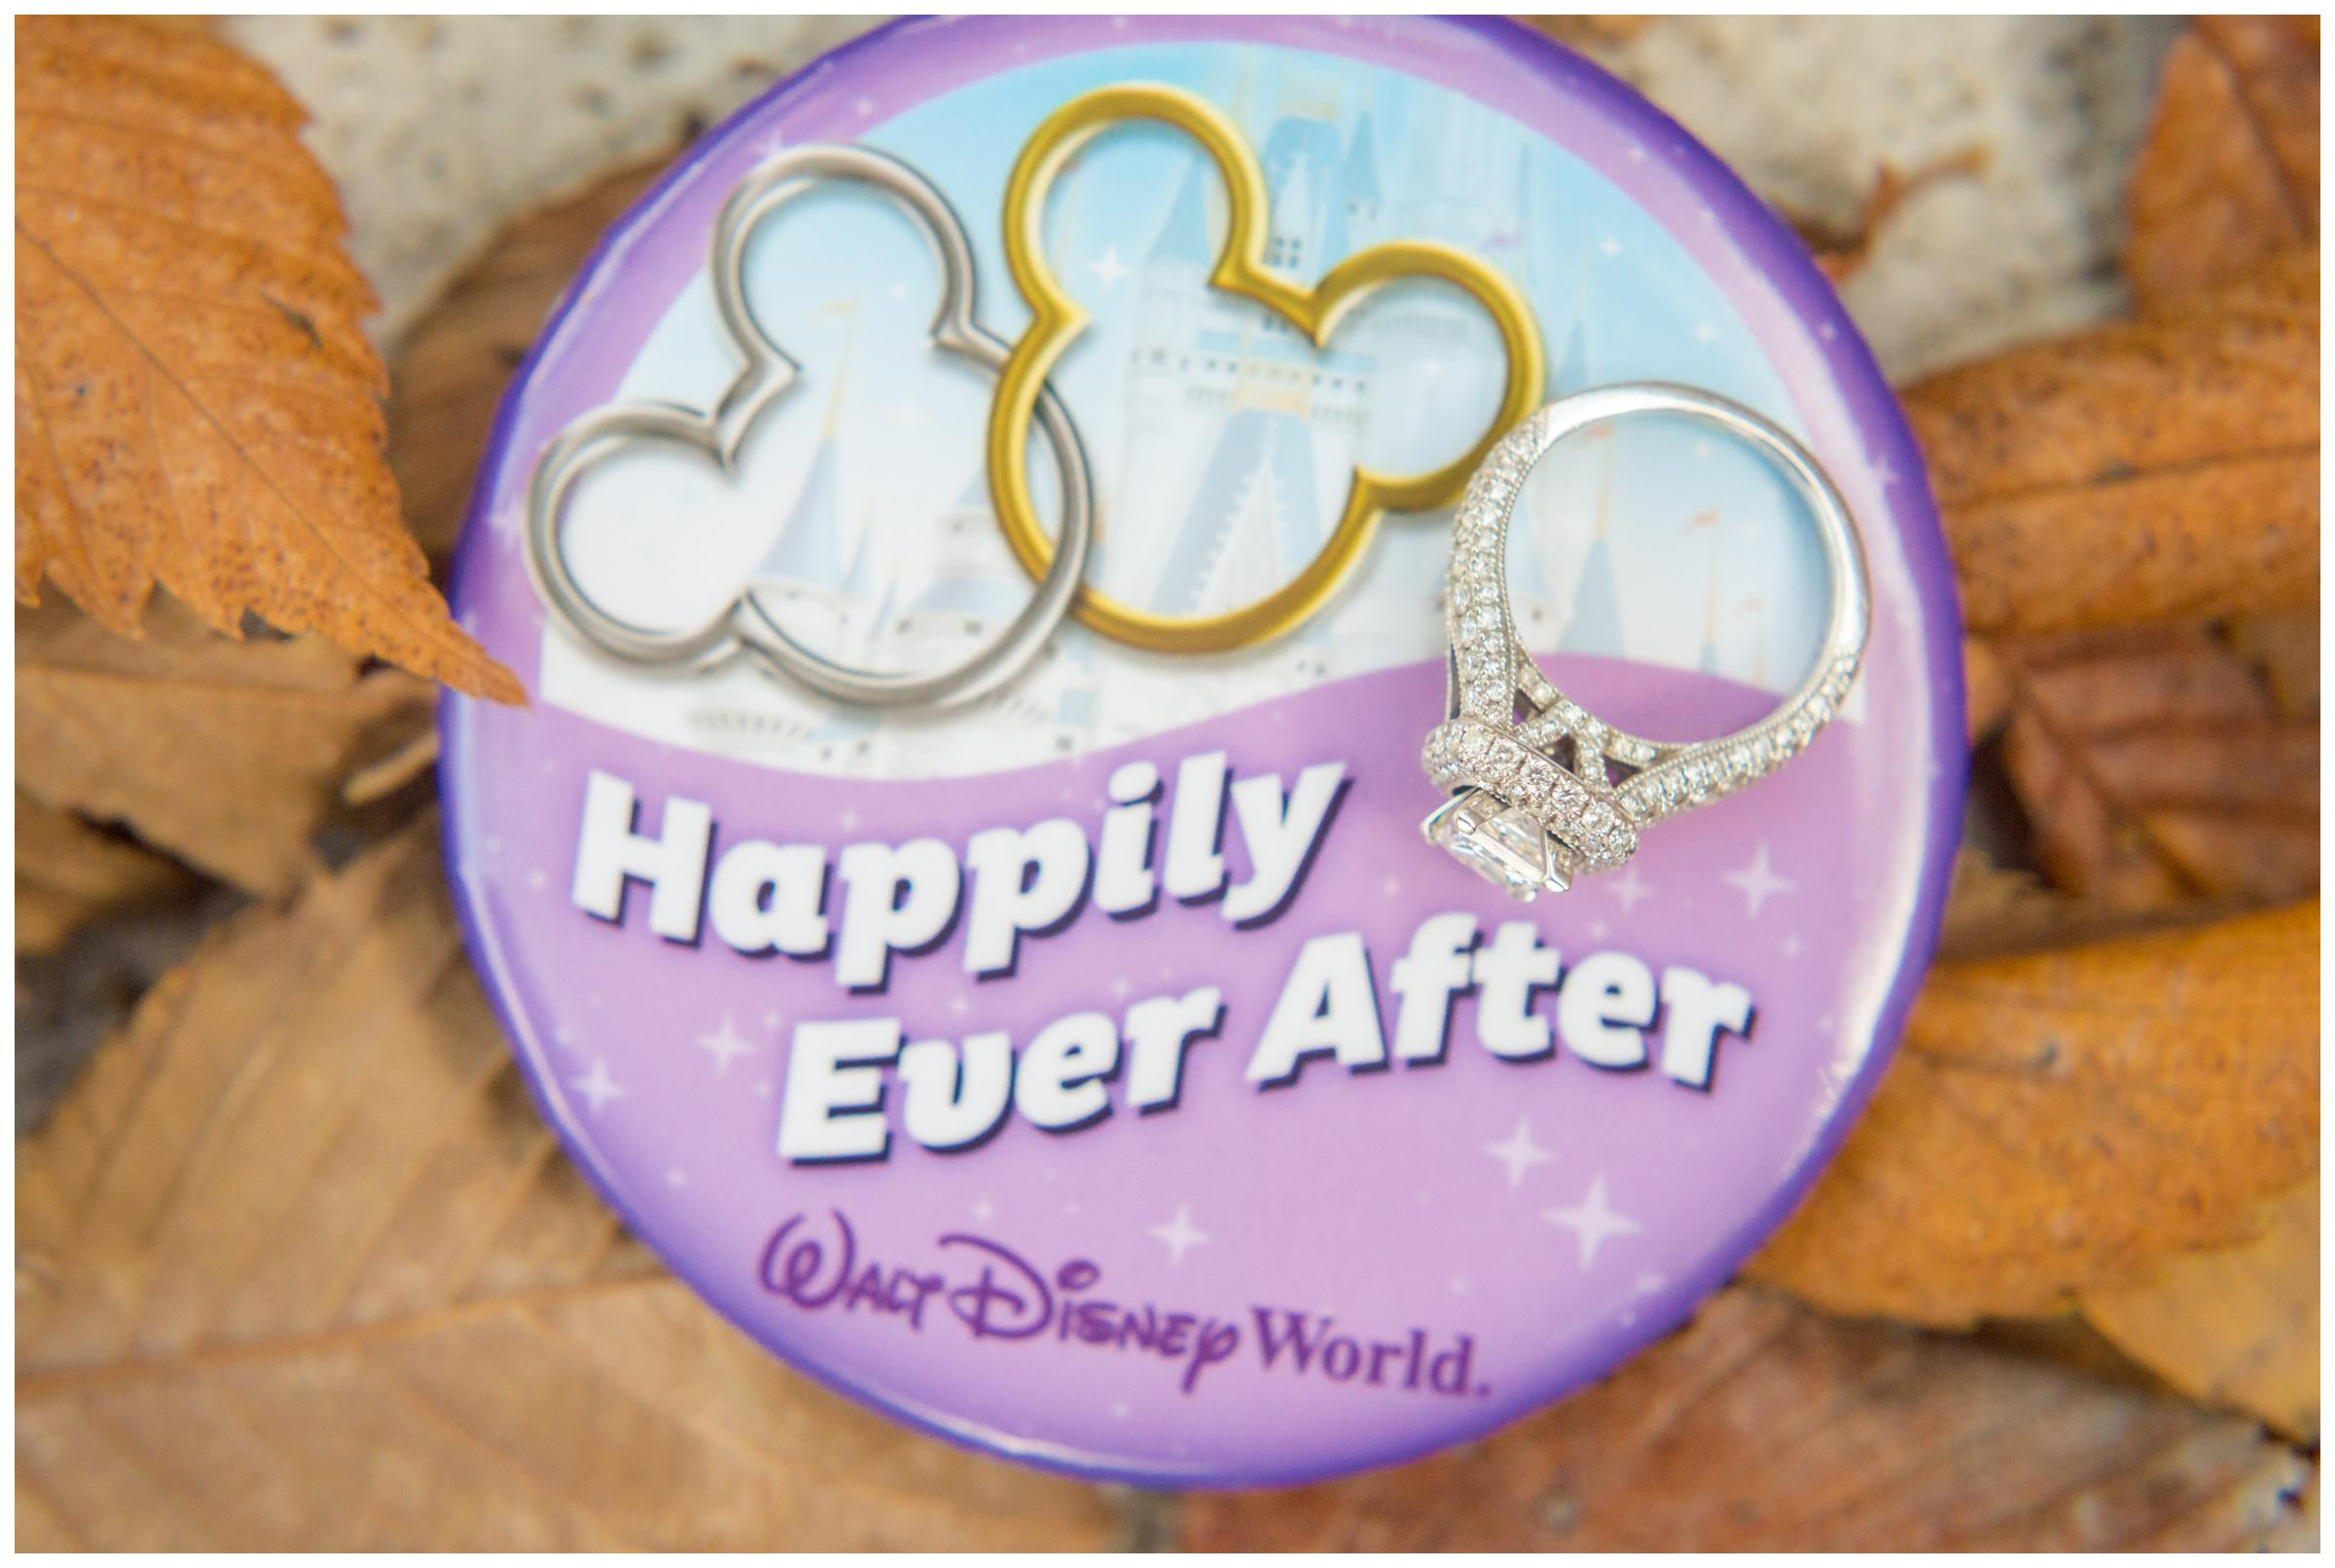 engagement ring with Happily Ever After button from Walt Disney World